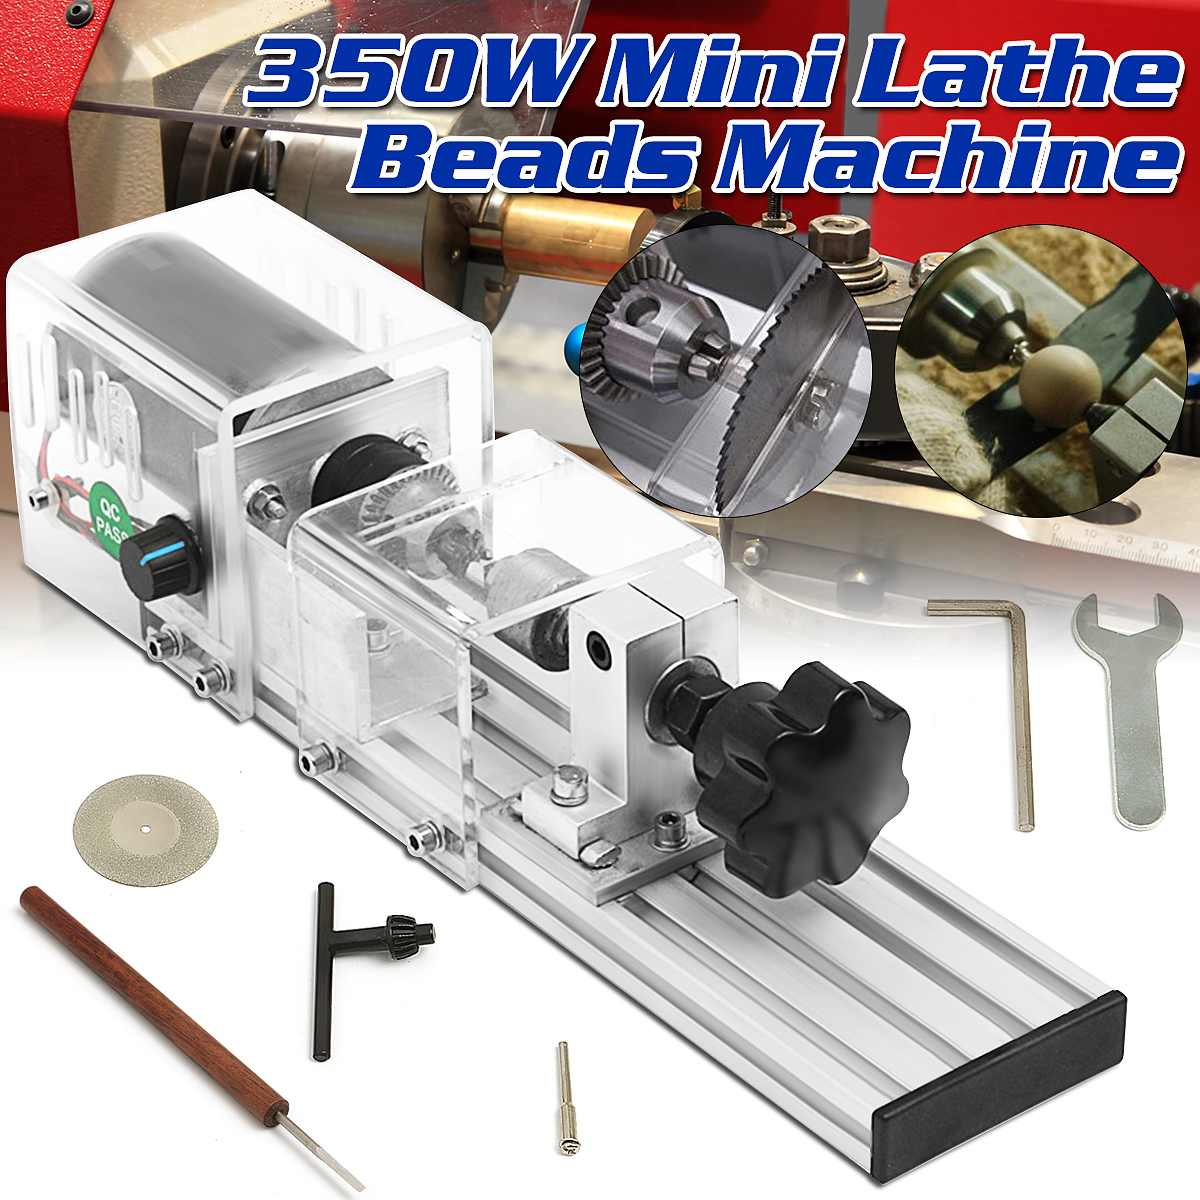 350W Precisions Mini Wood Lathe Machine DIY Woodworking Lathe Polishing Cutting Drill Rotary Tool Standard Set Benches Drill